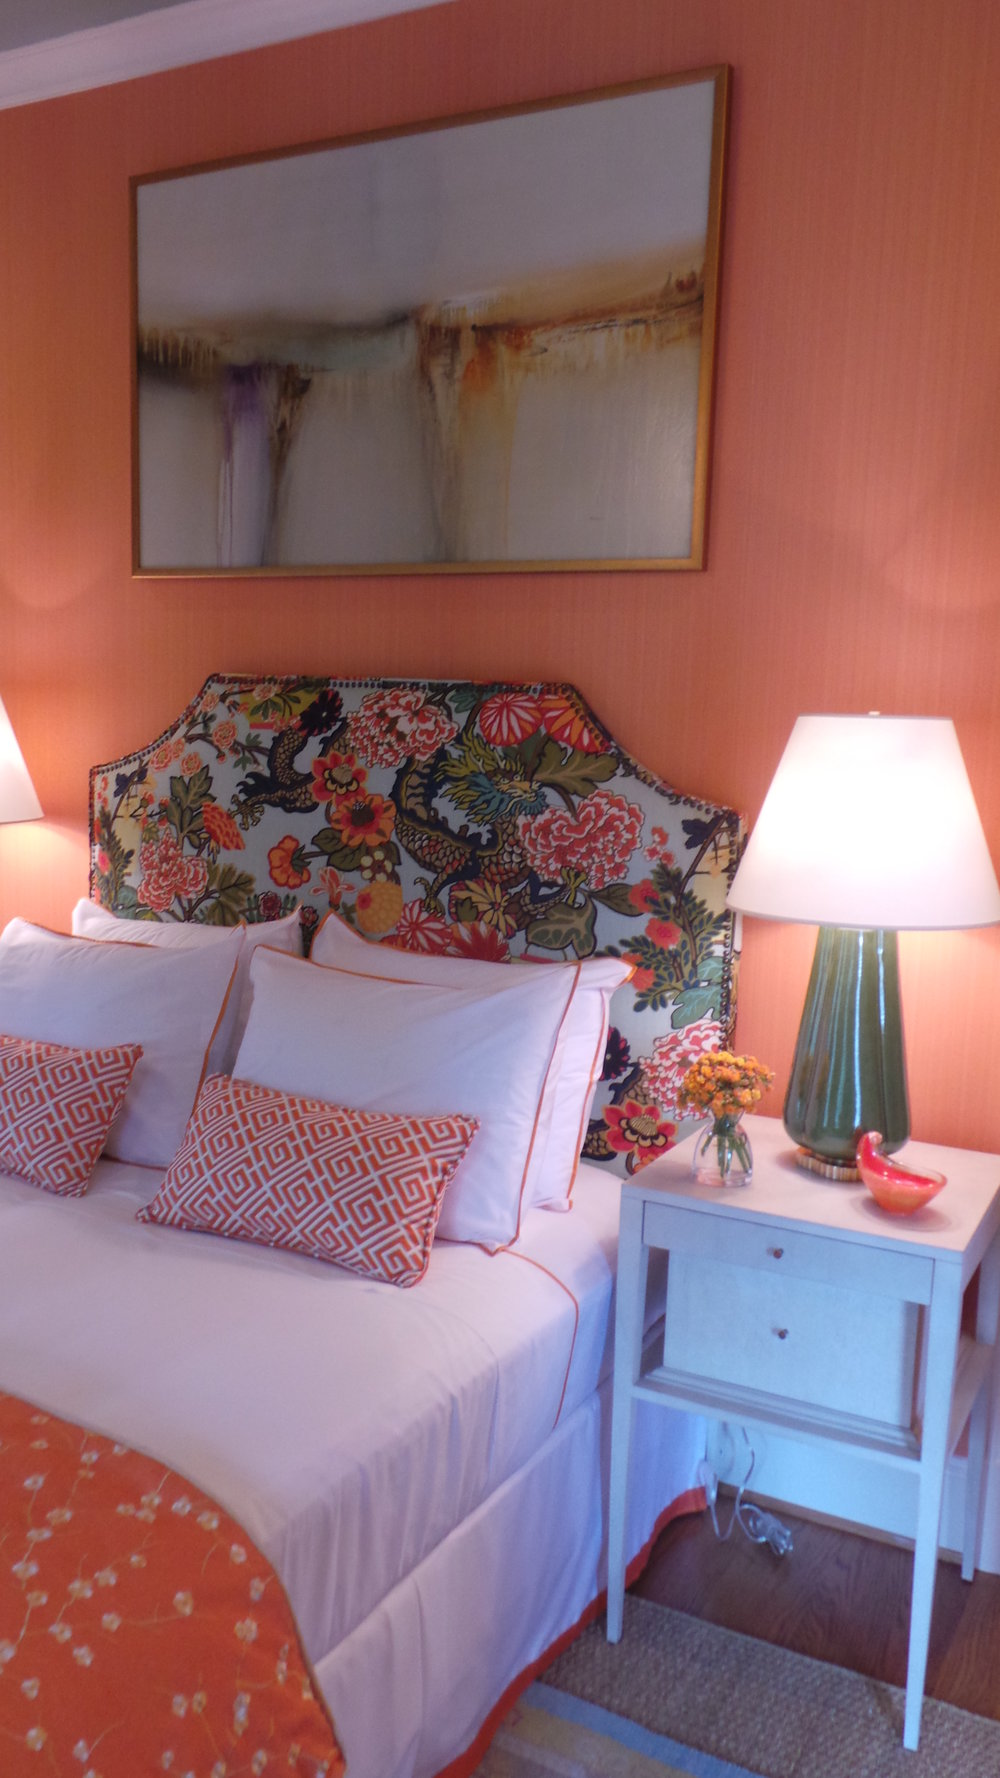 Bedroom by Charles C. Almonte; photo by Holly O'Brian